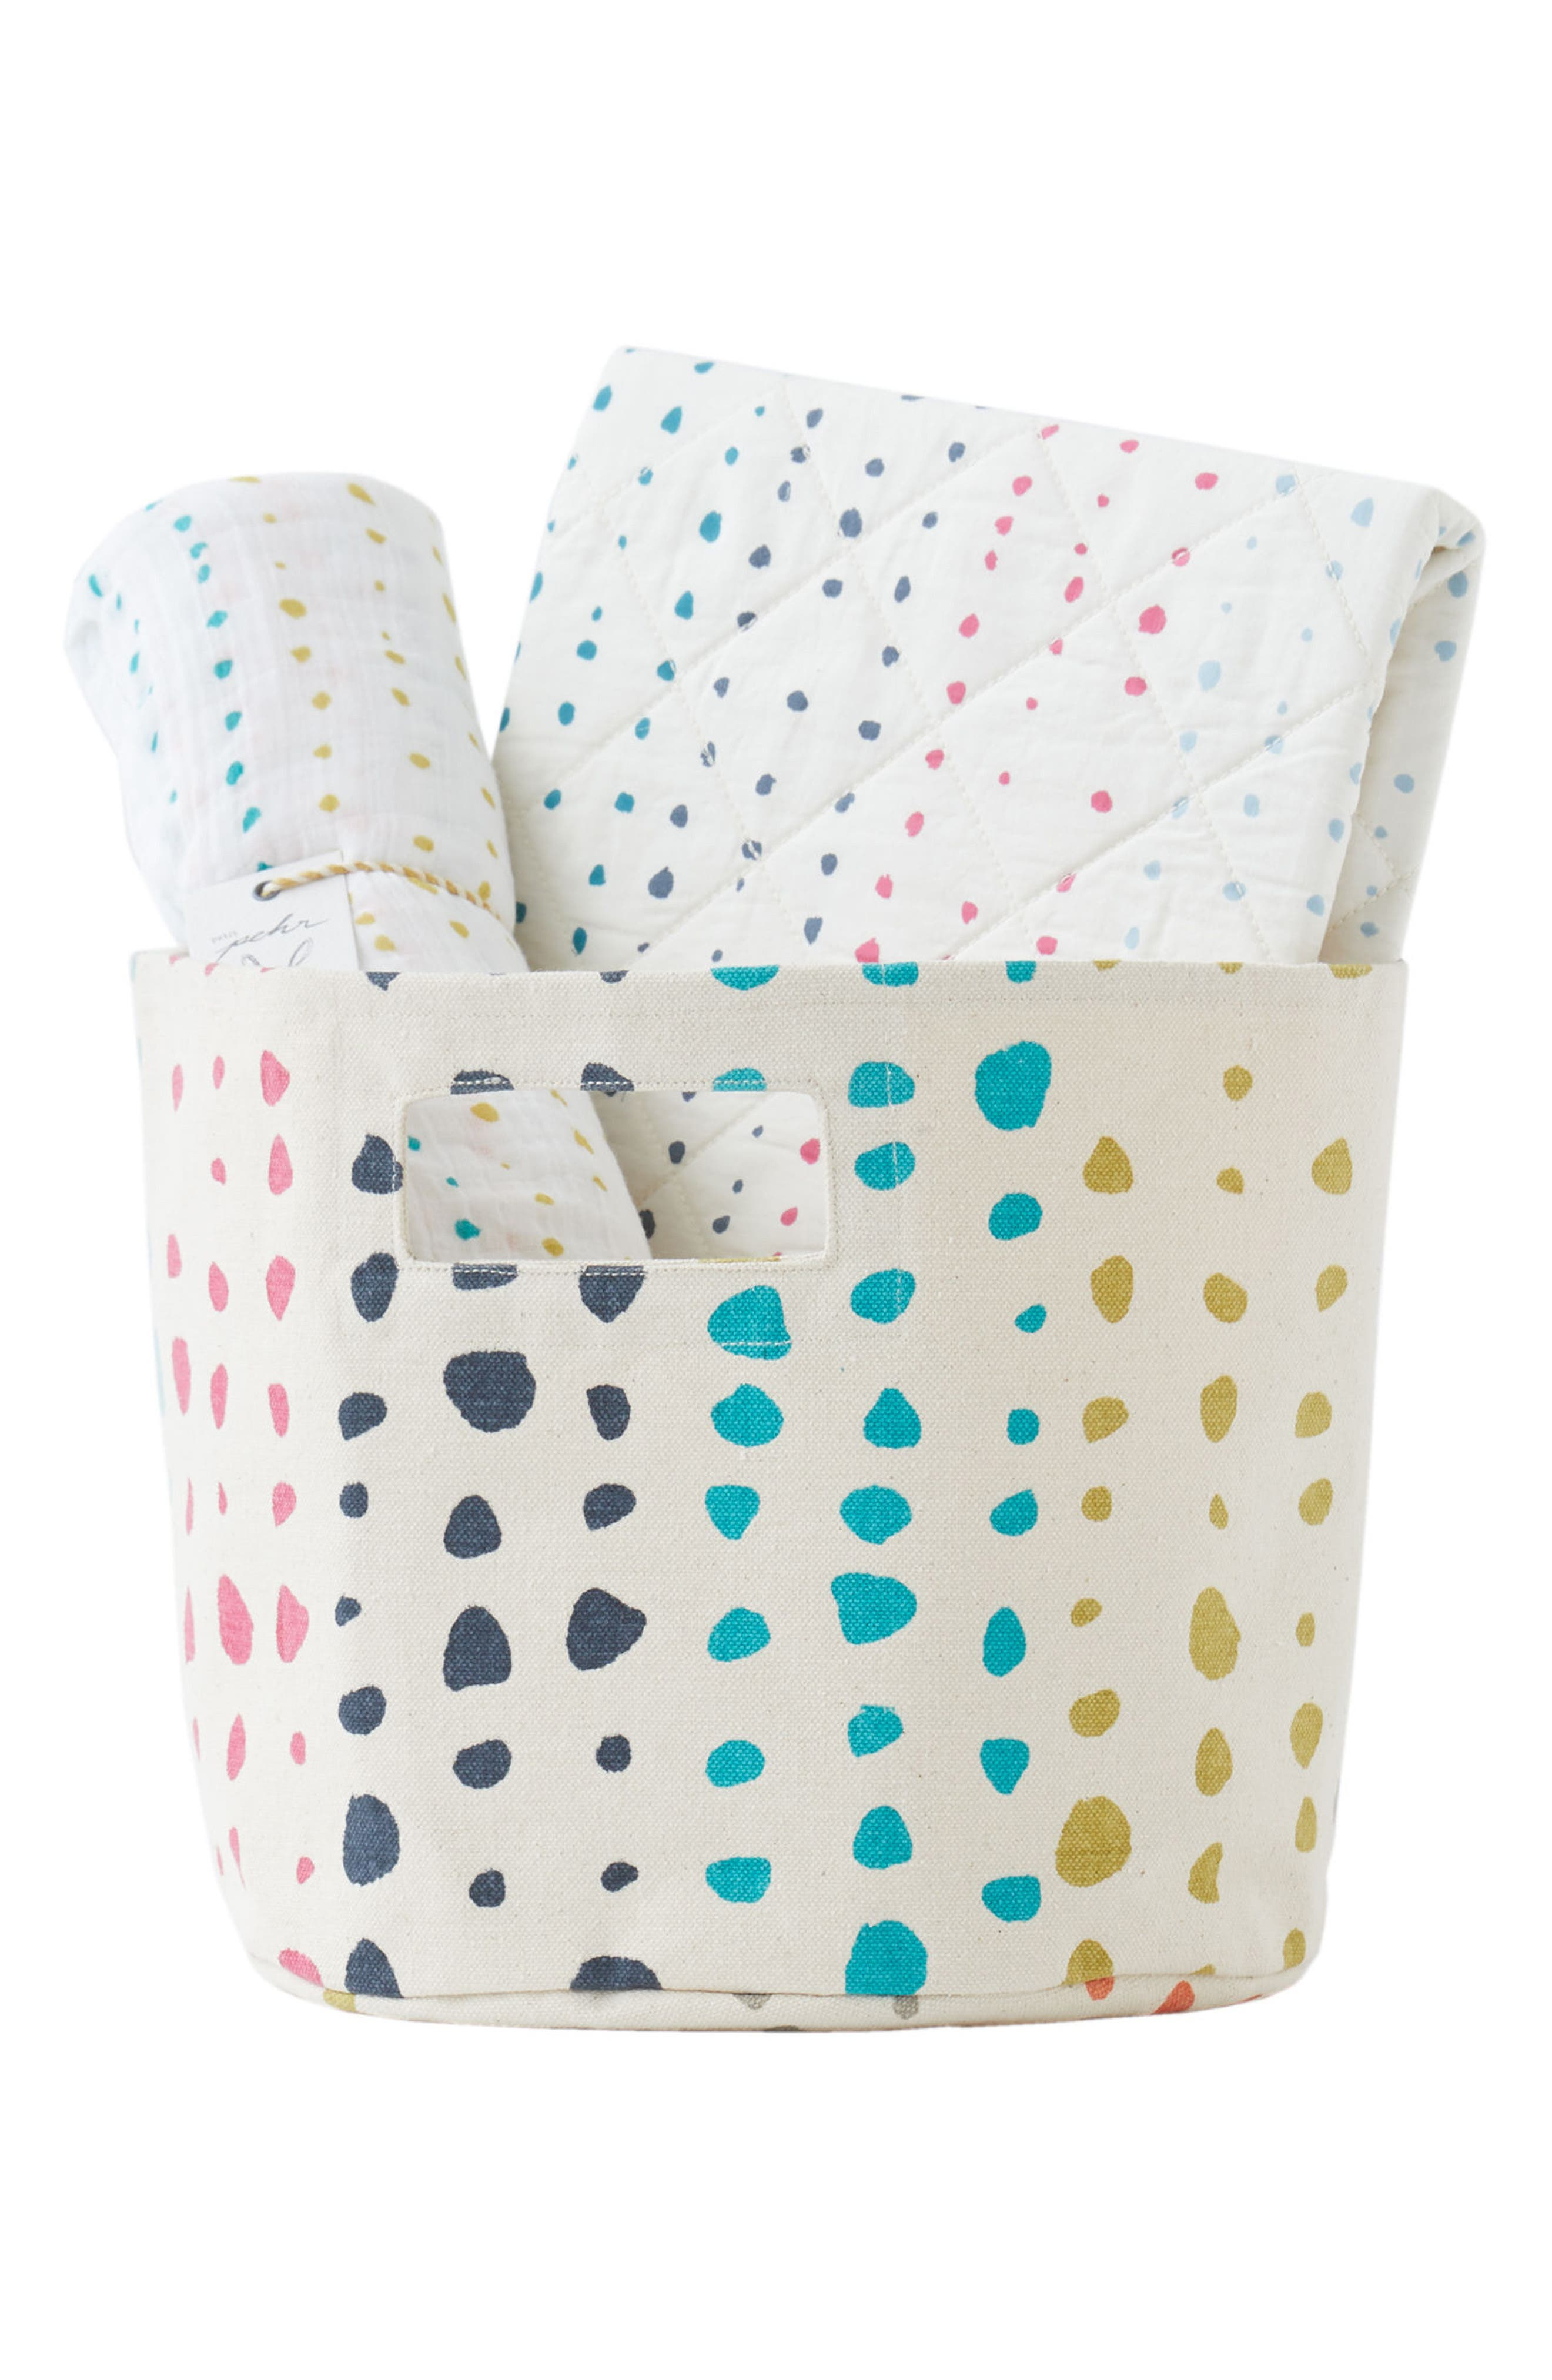 Painted Dots Changing Pad Cover, Swaddle & Bin Set,                             Main thumbnail 1, color,                             900